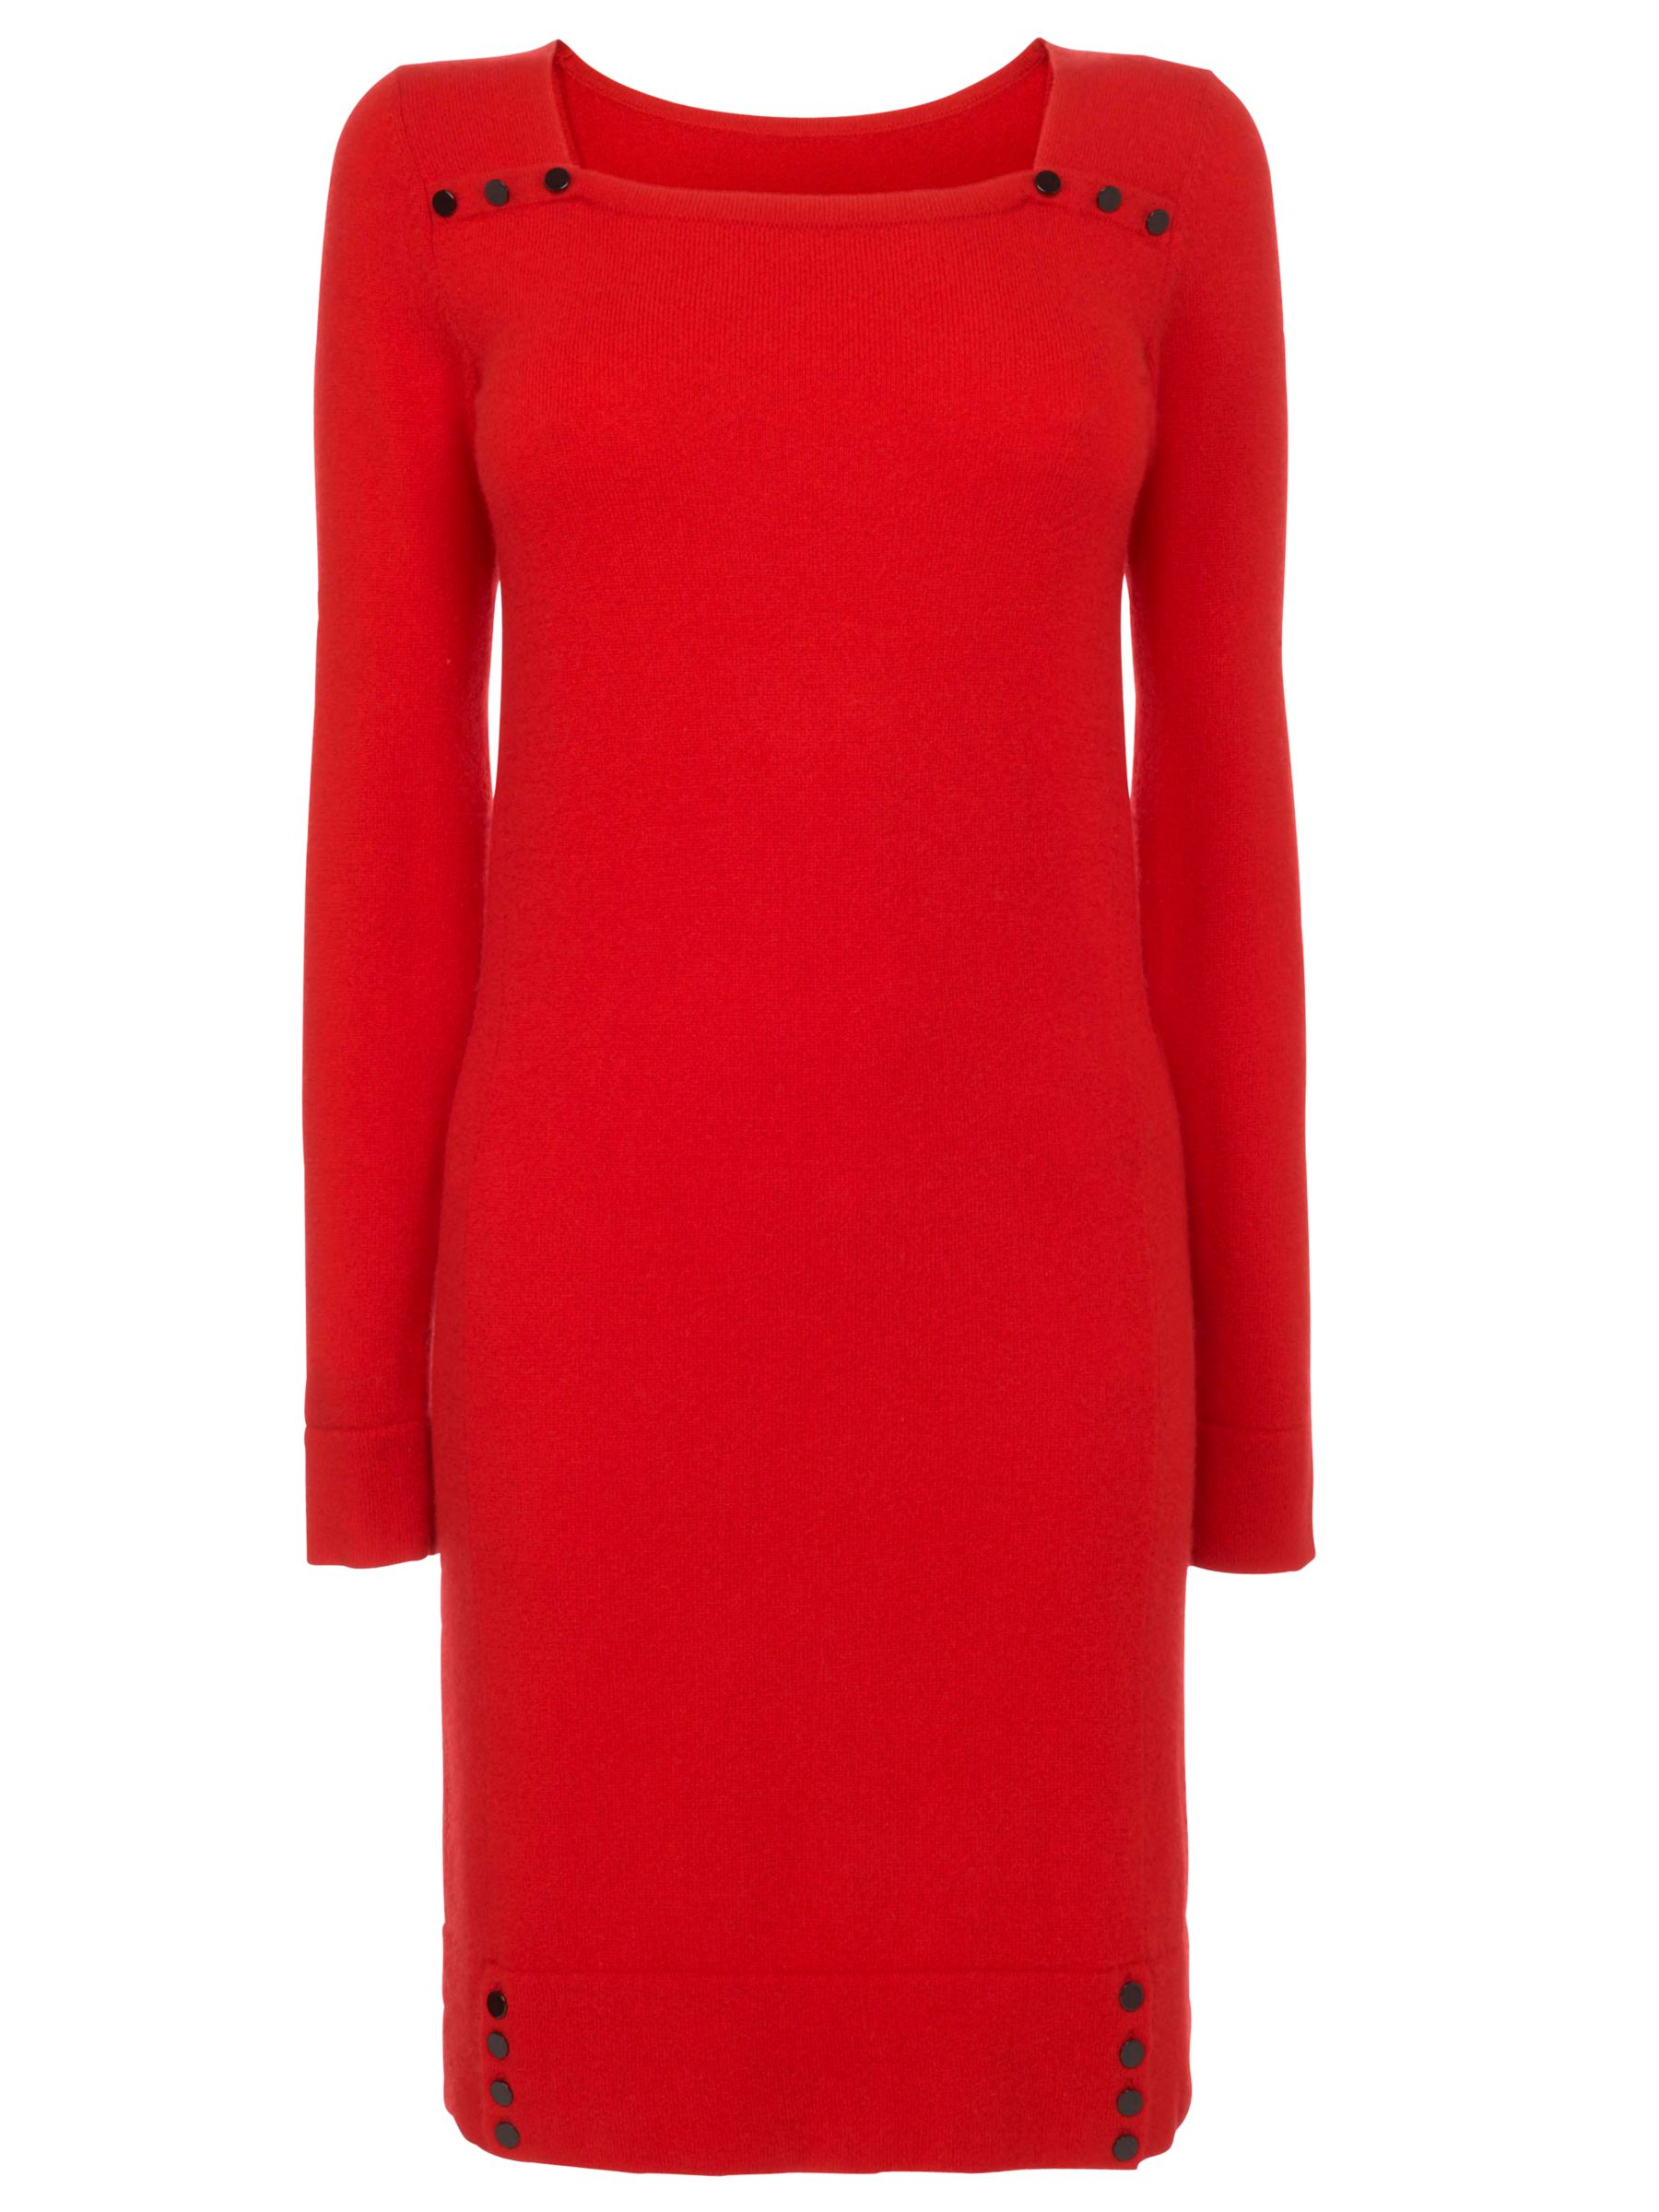 Jaeger Square Neck Cashmere Sweater Dress, Red at John Lewis